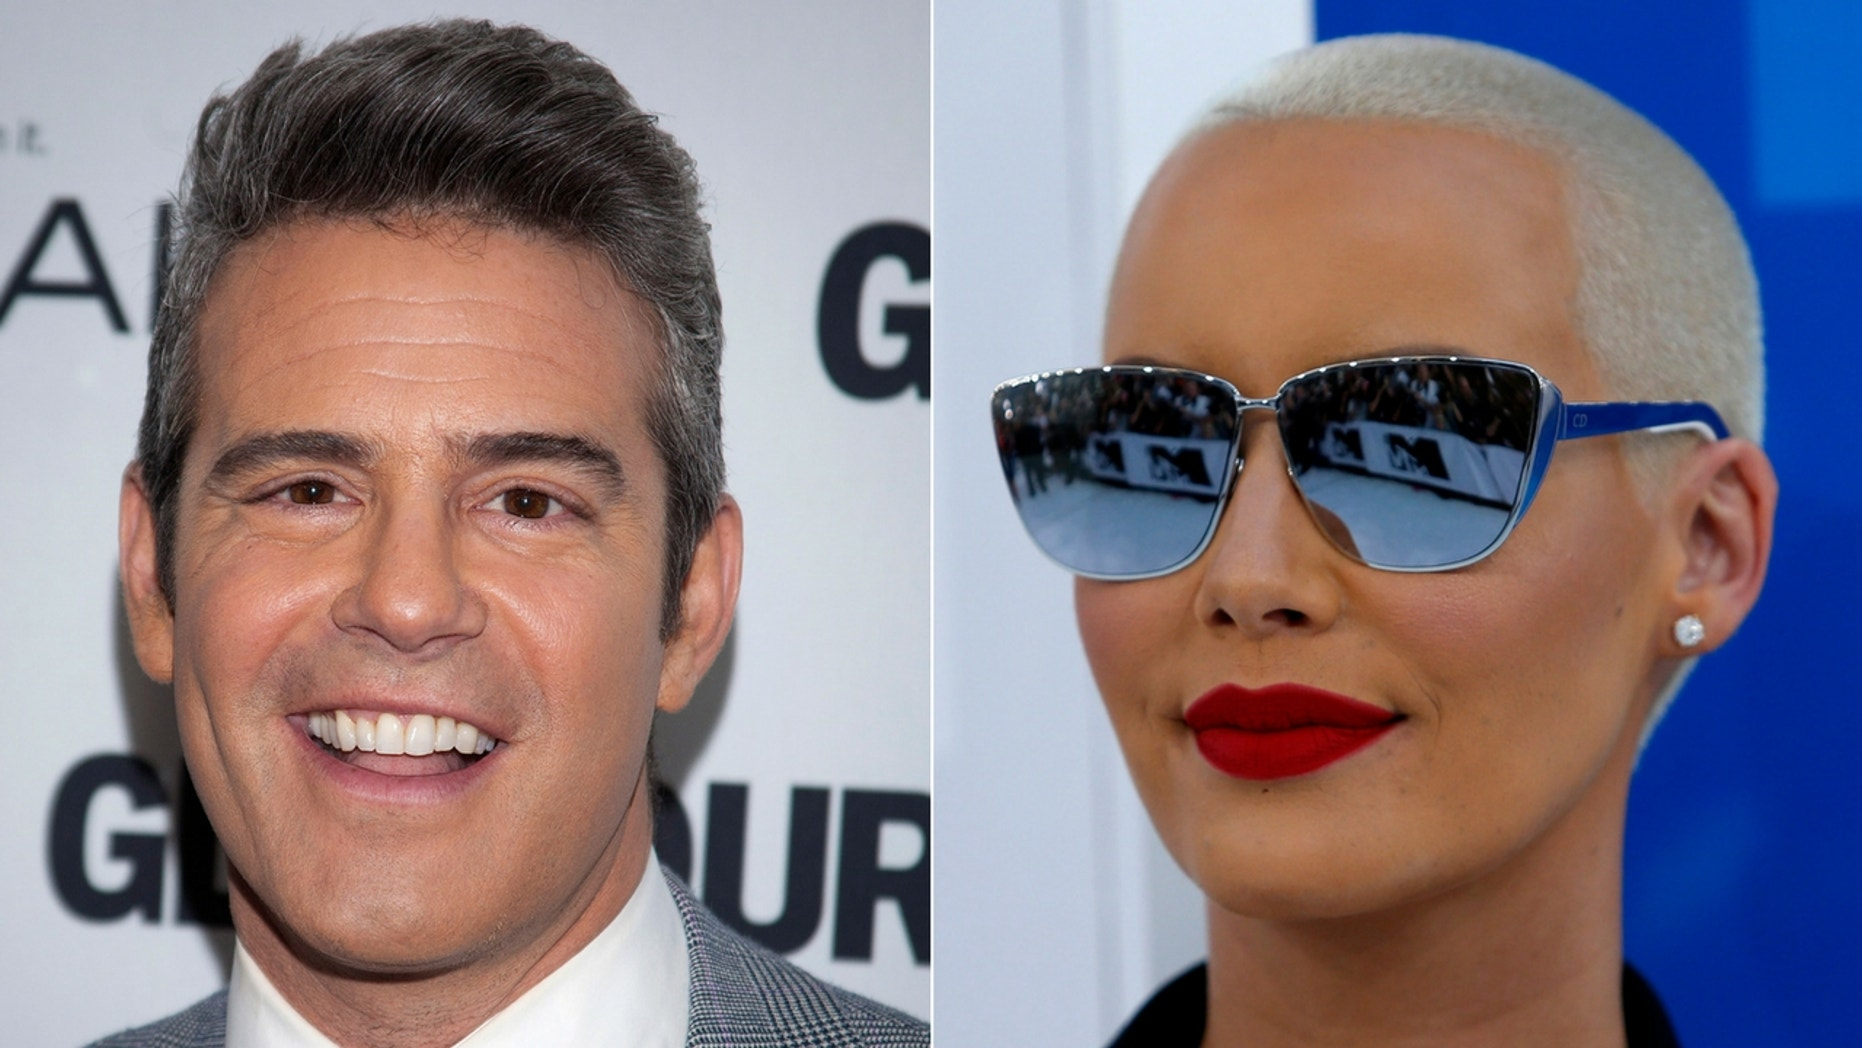 Andy Cohen said Amber Rose was one of the worst guests to appear on his show.